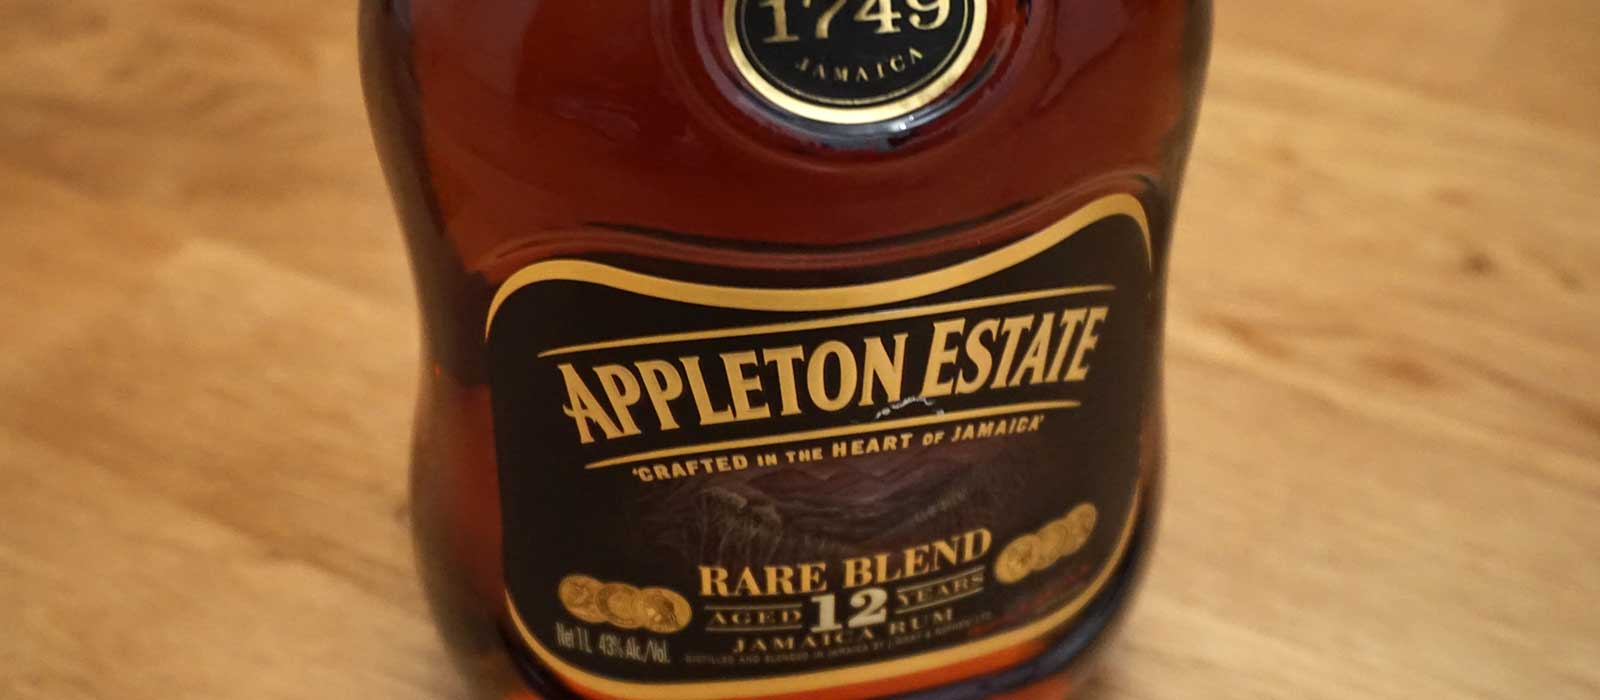 Månadens rom februari 2017: Appleton Estate Rare Blend